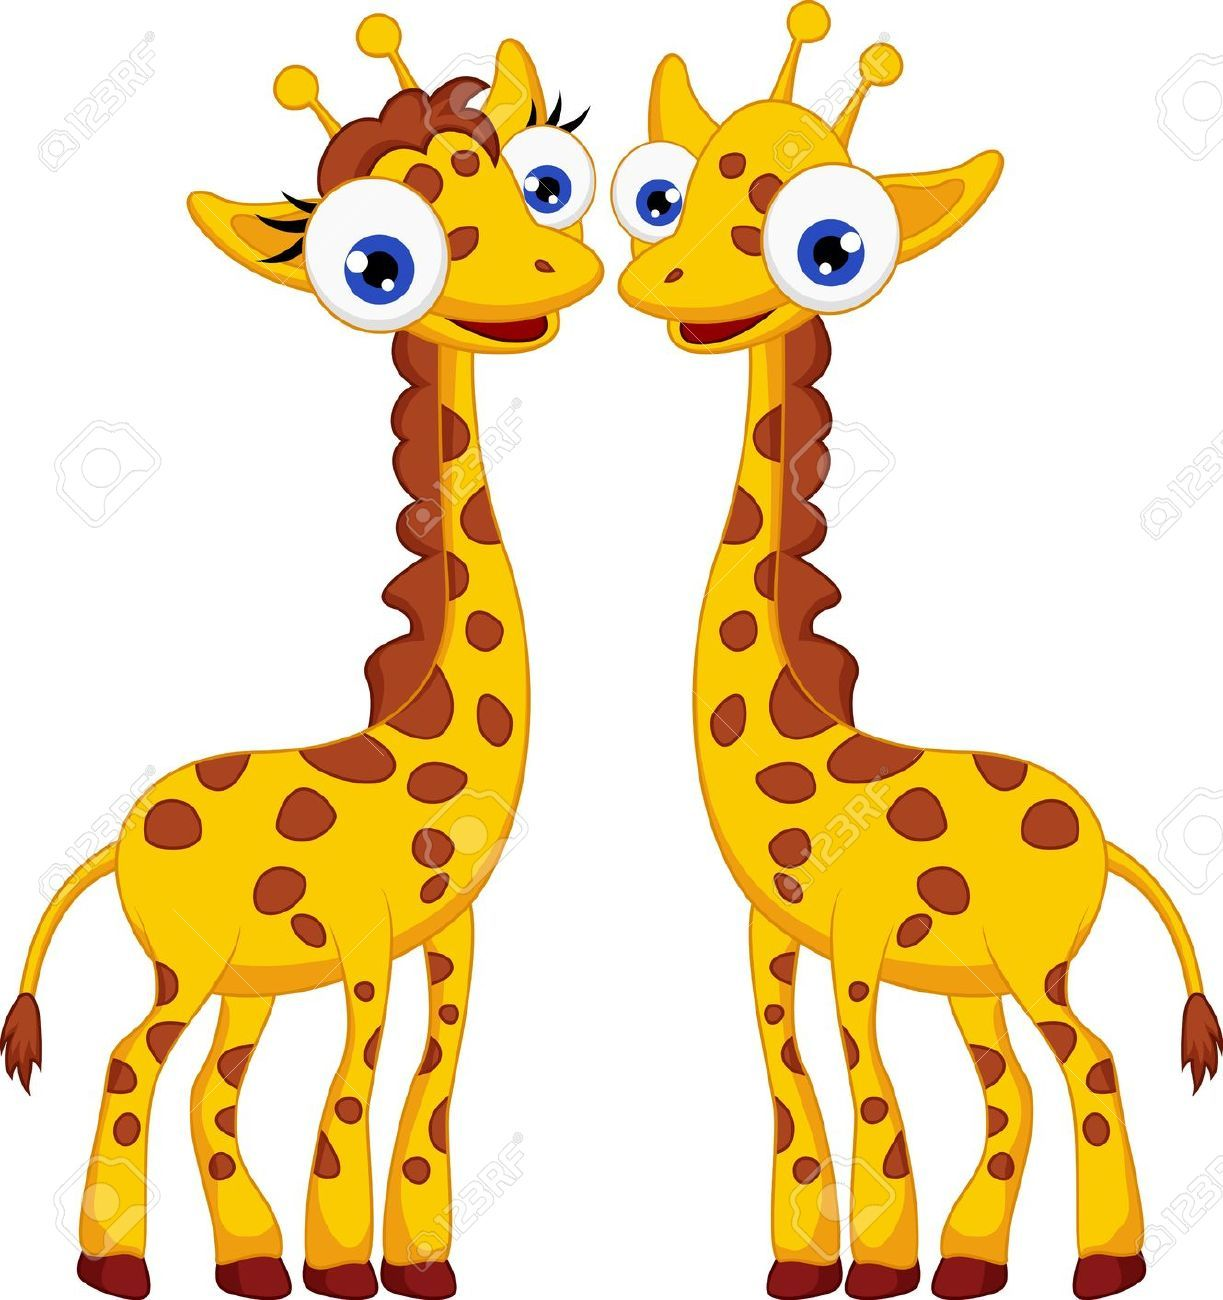 1223x1300 Clipart Giraffe Head Images On Page 0 Yanhe Clip Art